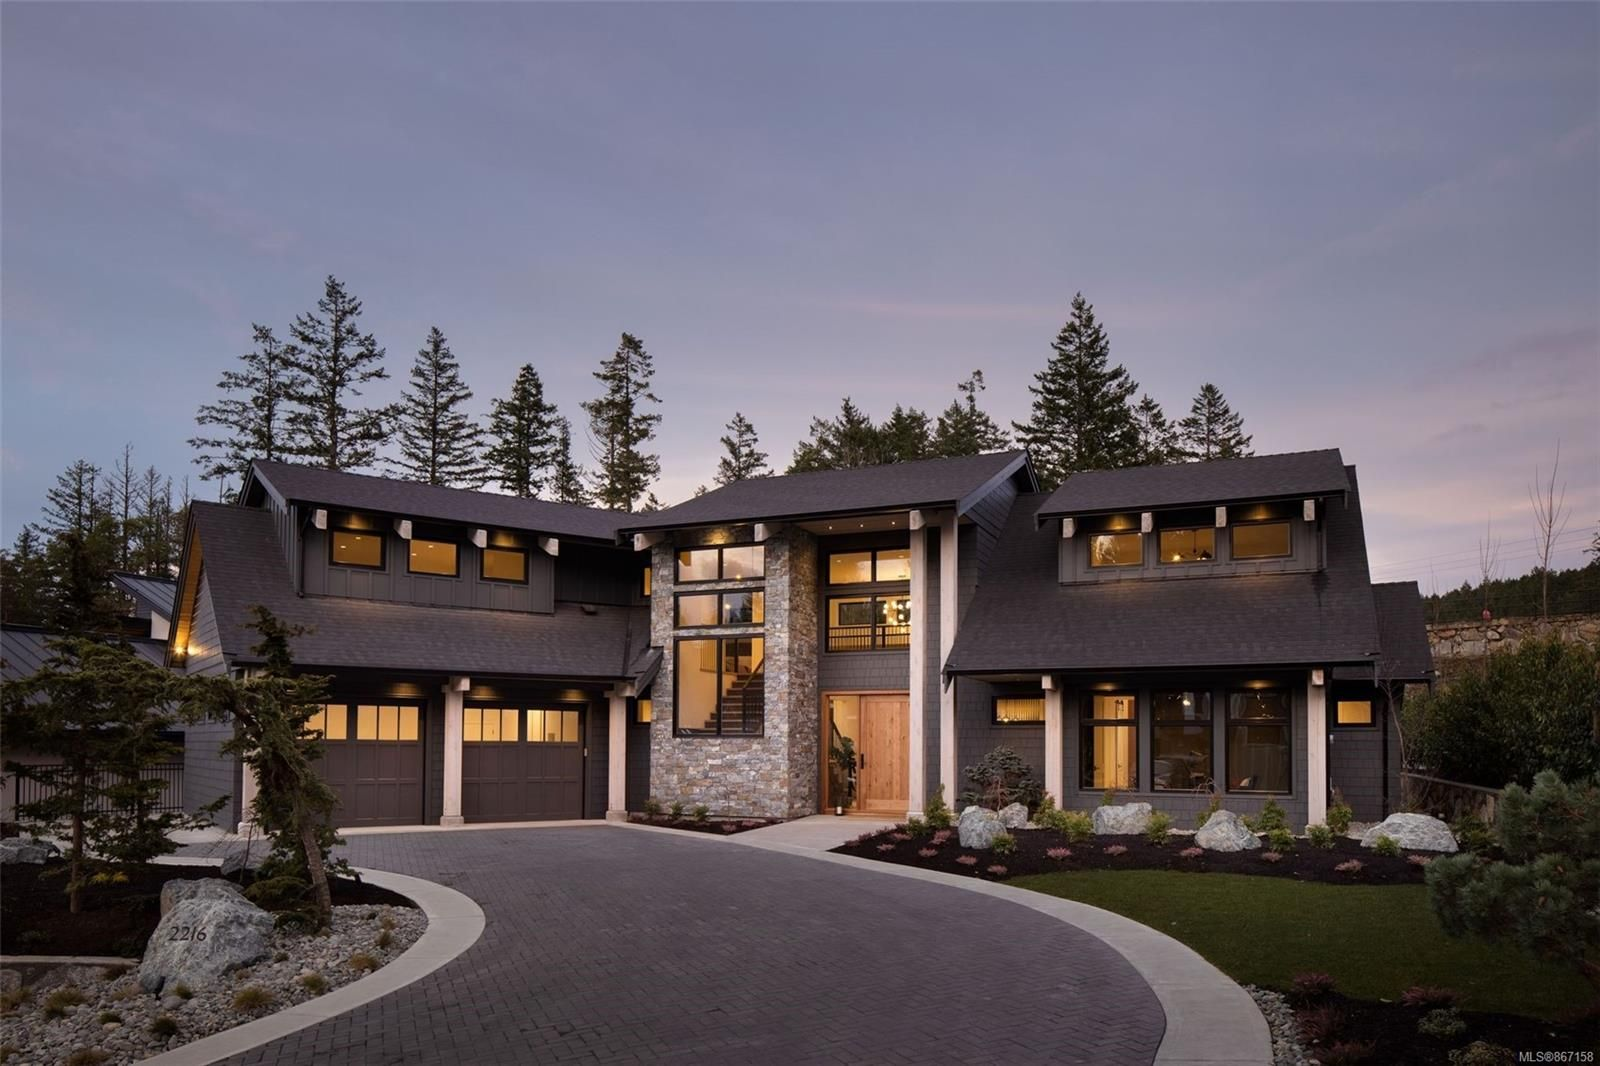 Main Photo: 2216 Riviera Pl in : La Bear Mountain House for sale (Langford)  : MLS®# 867158